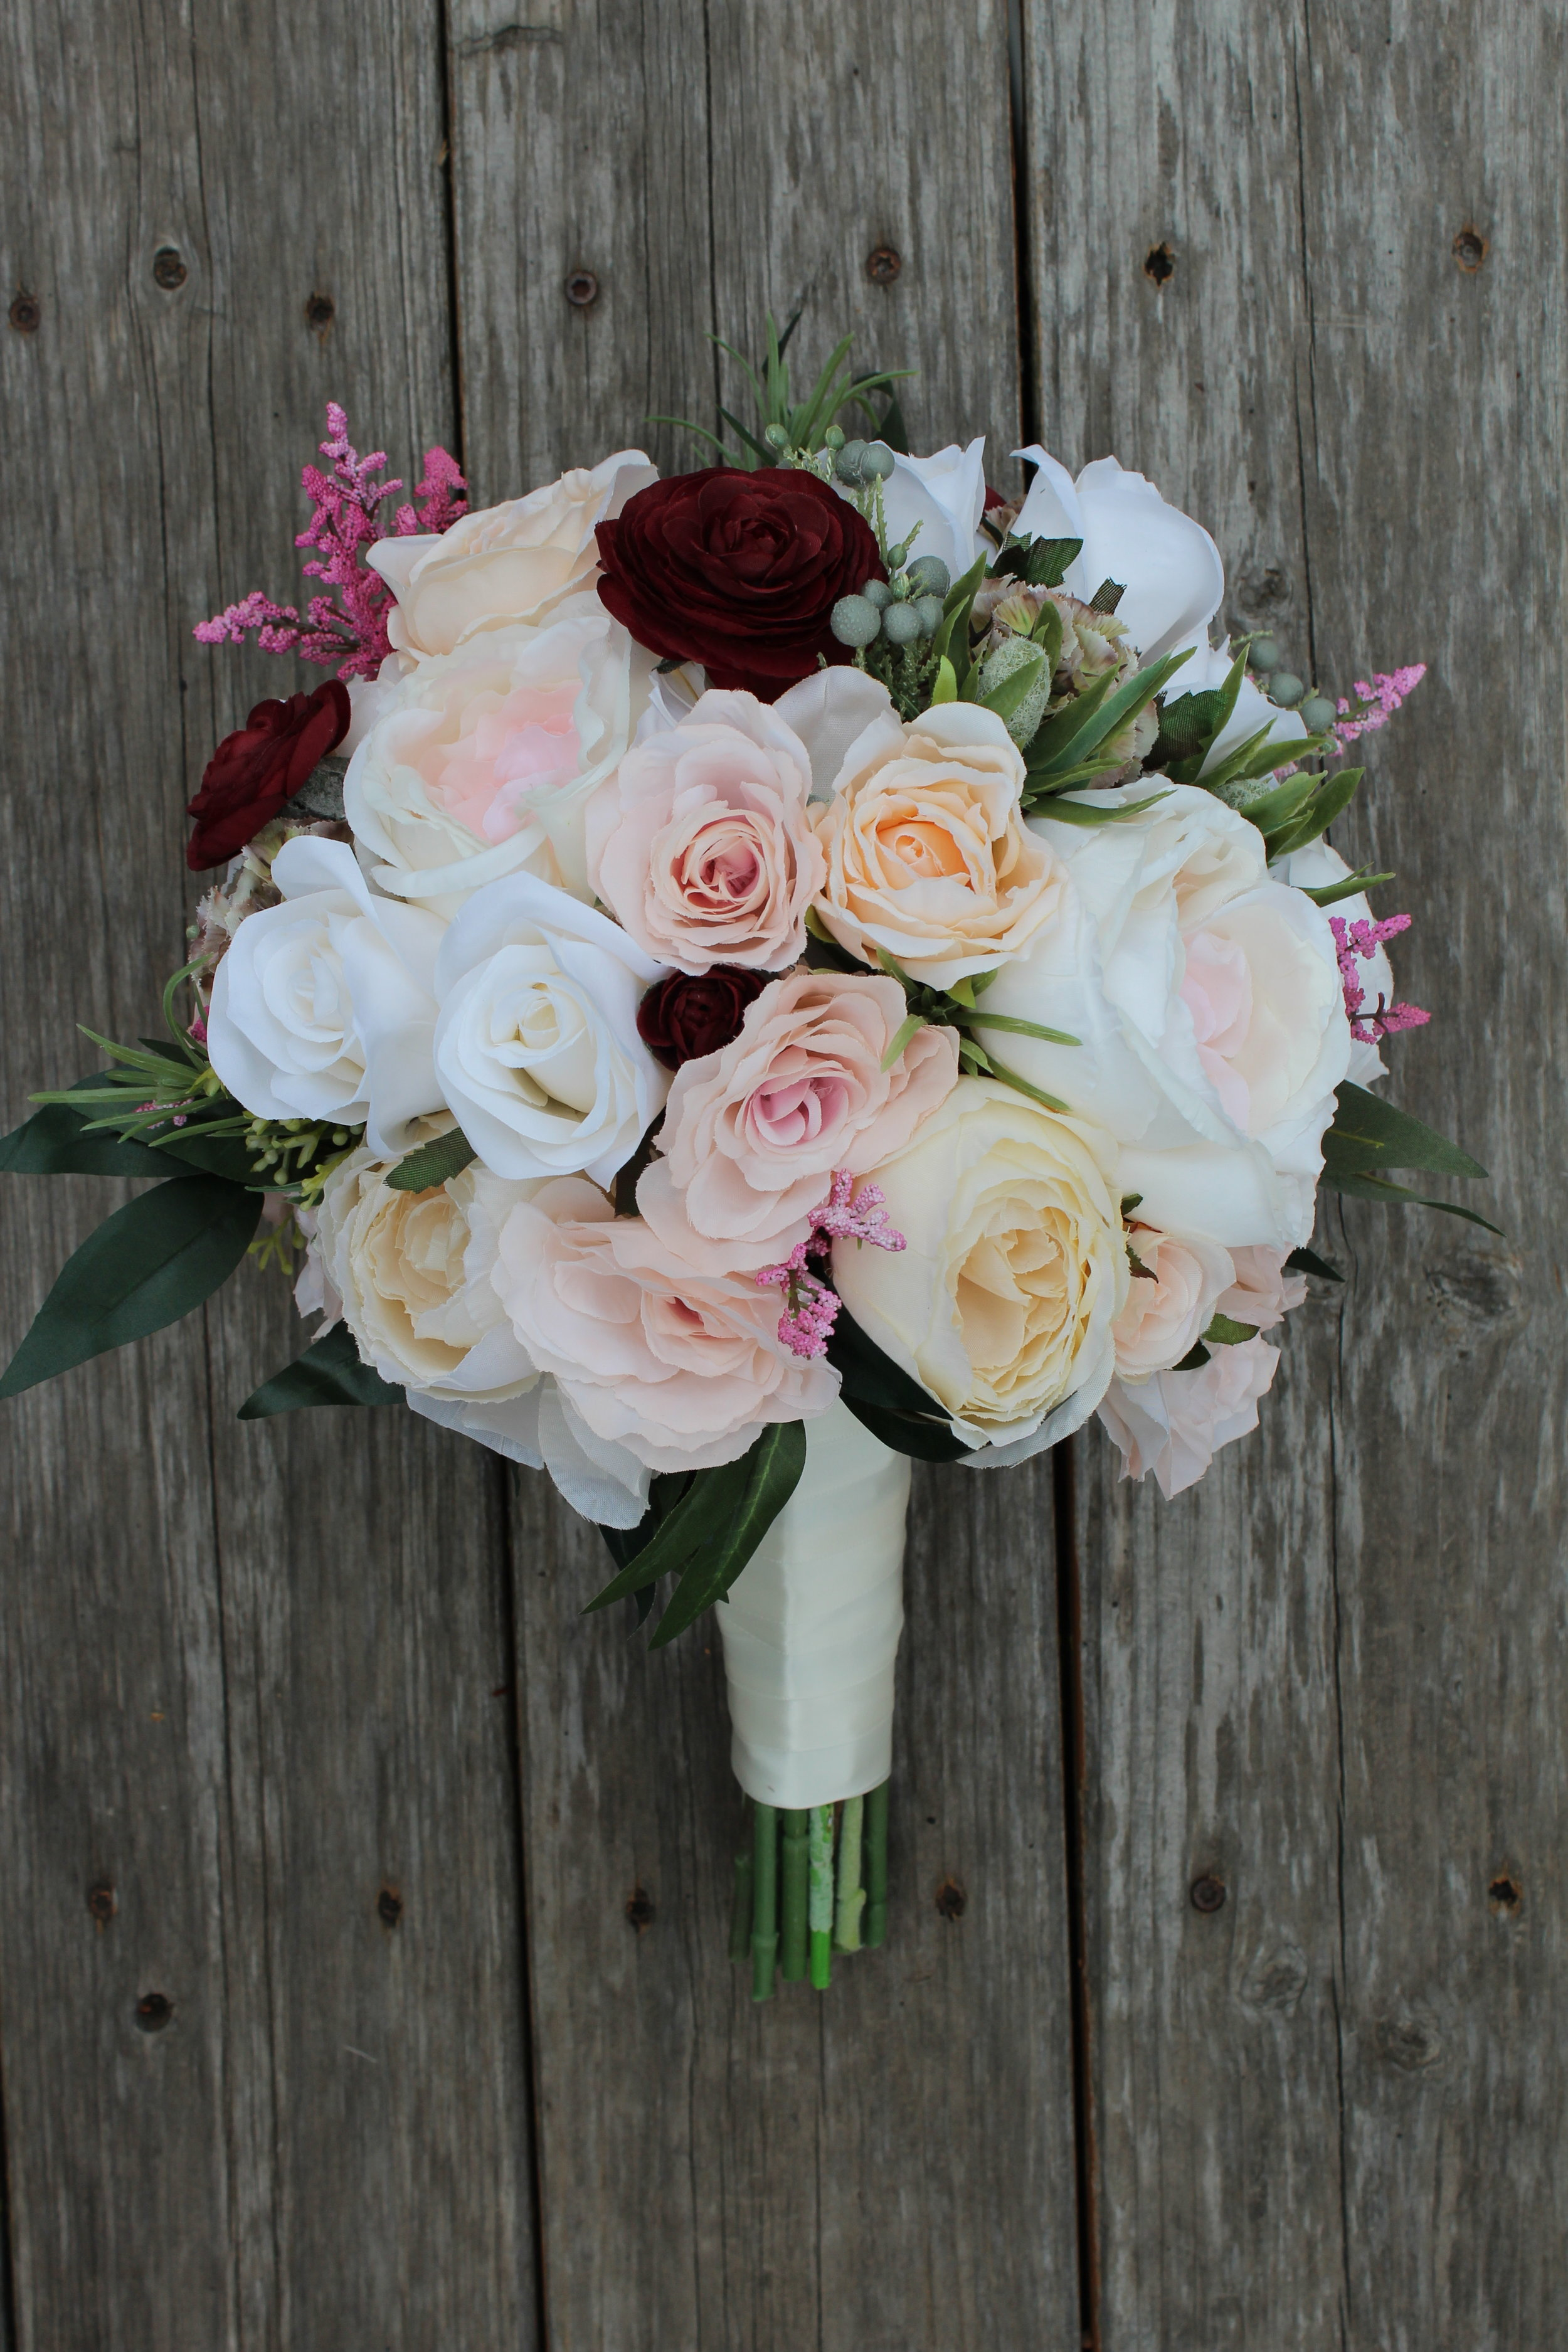 silk-bridal-bouquet-recreation-custom-wedding-flowers.jpg